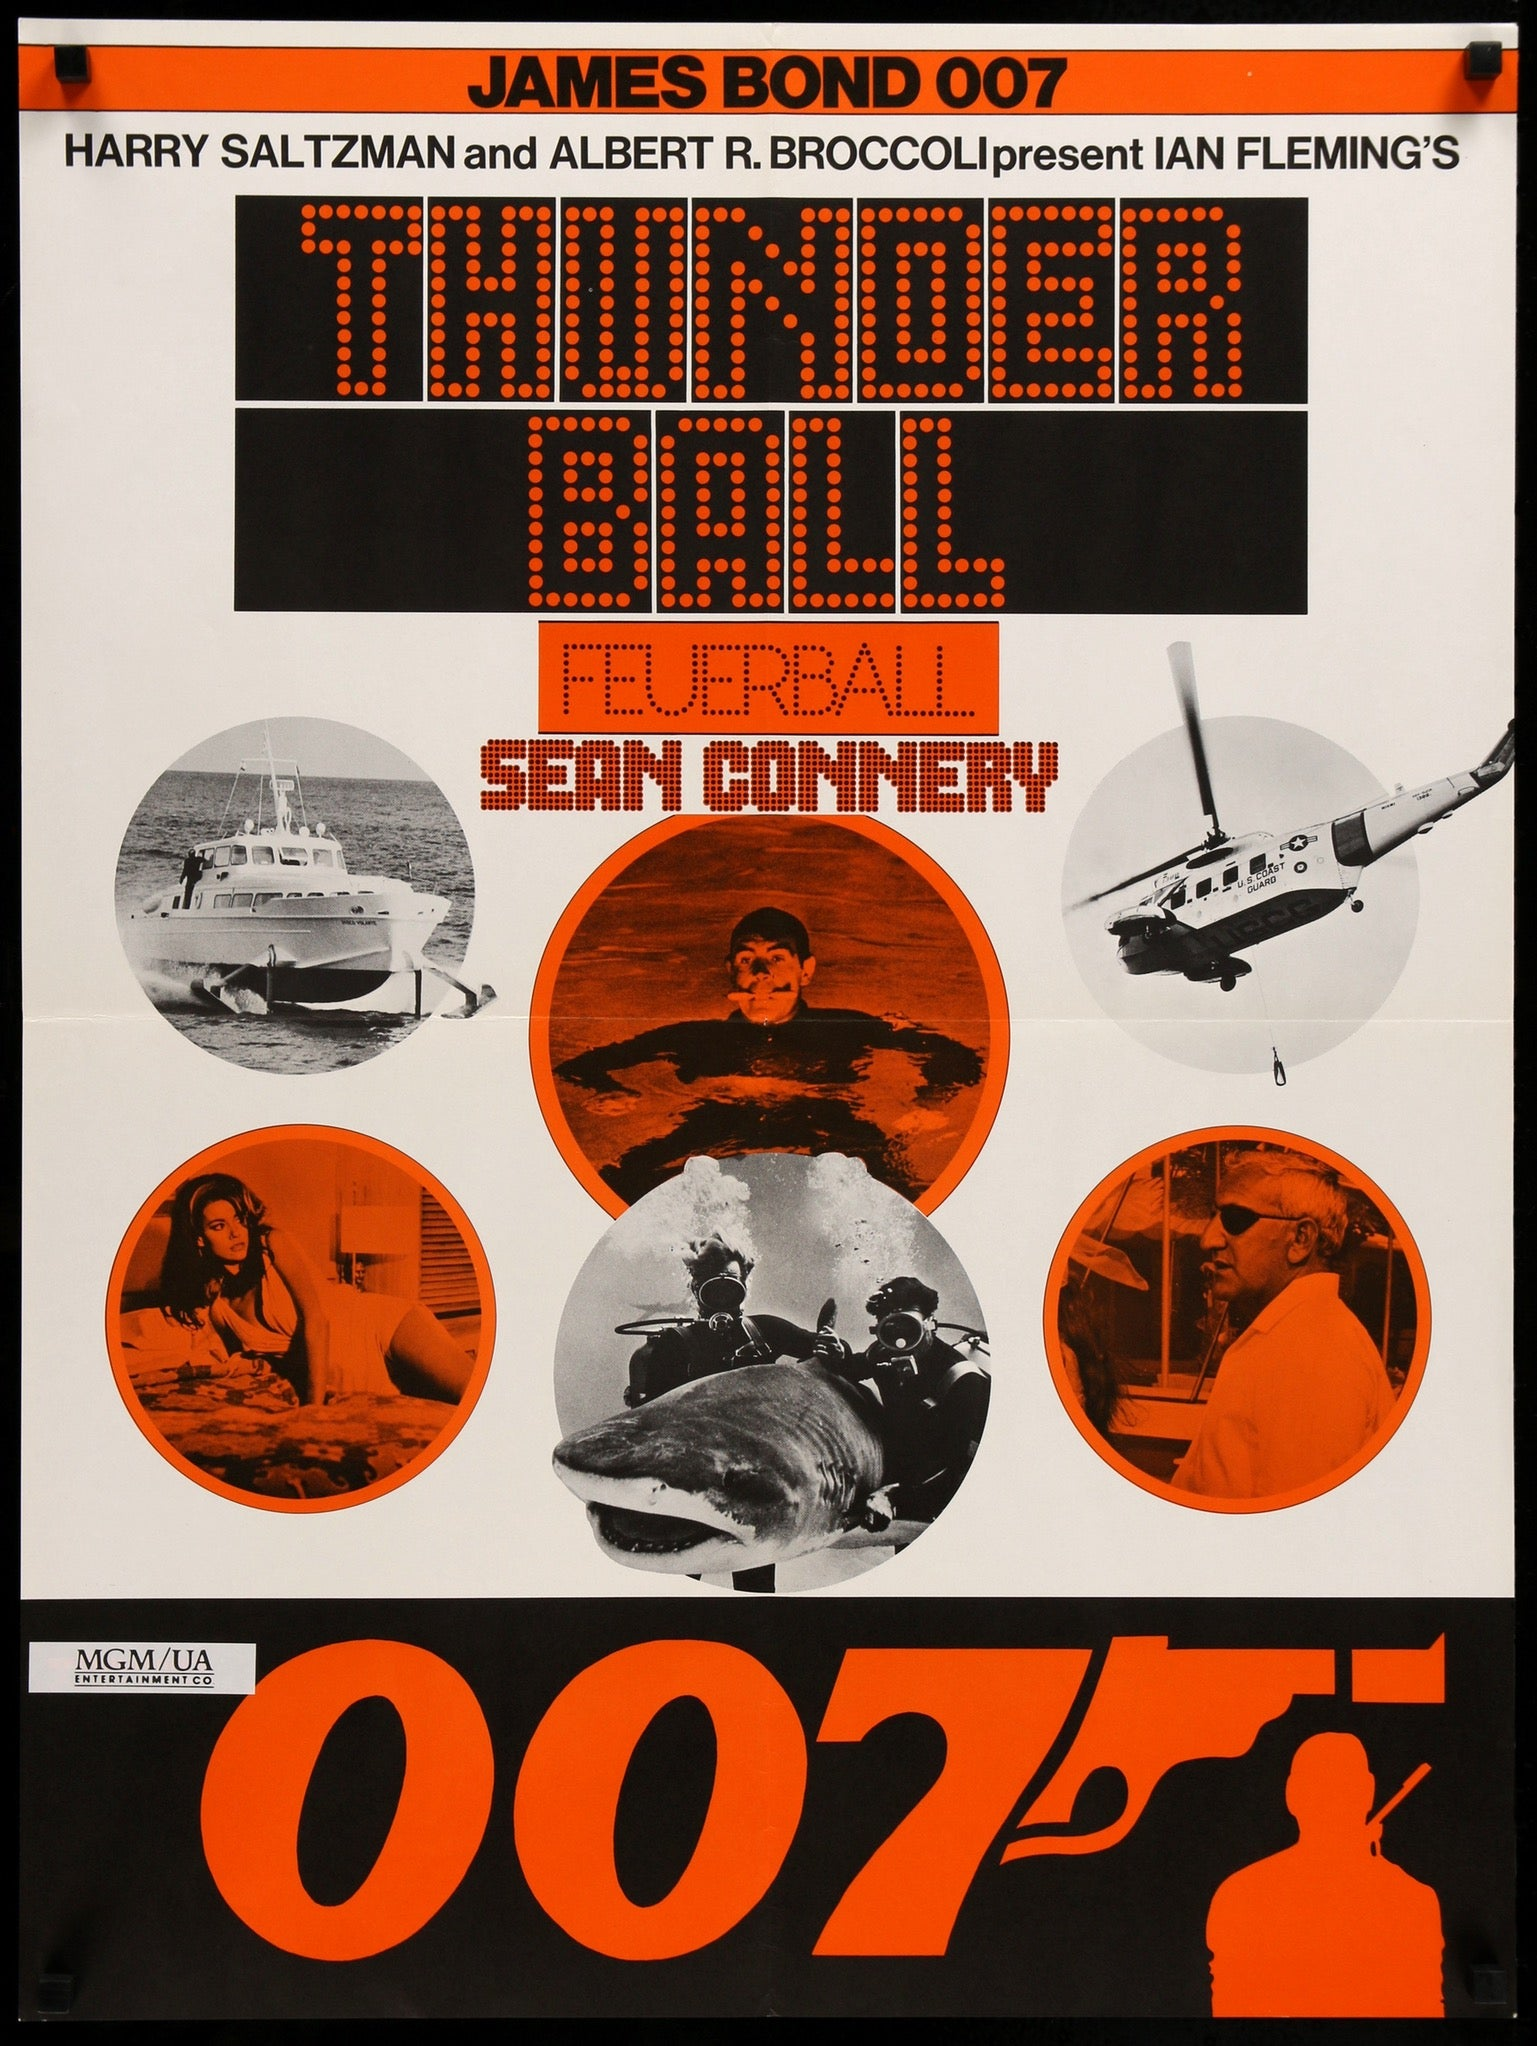 thunderball_R1970s_original_film_art_5000x.jpg?v=1569087120